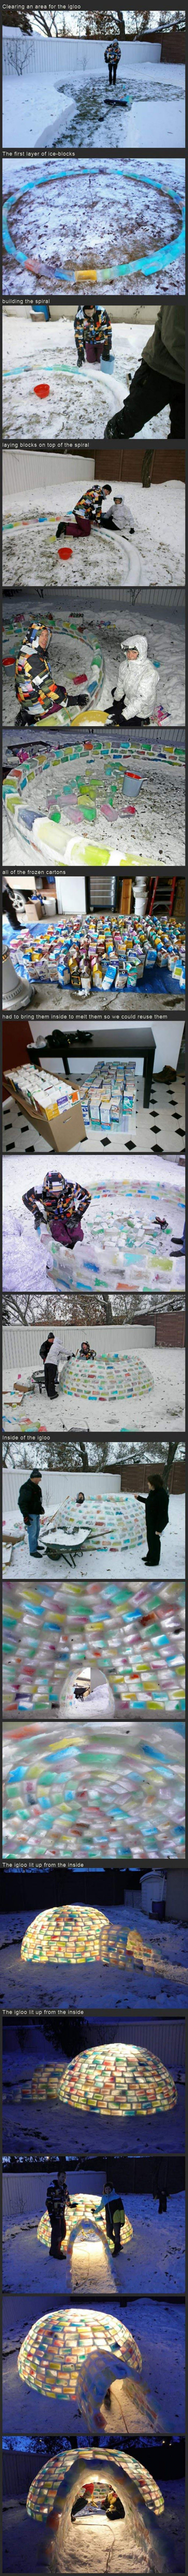 awesome igloo funny picture